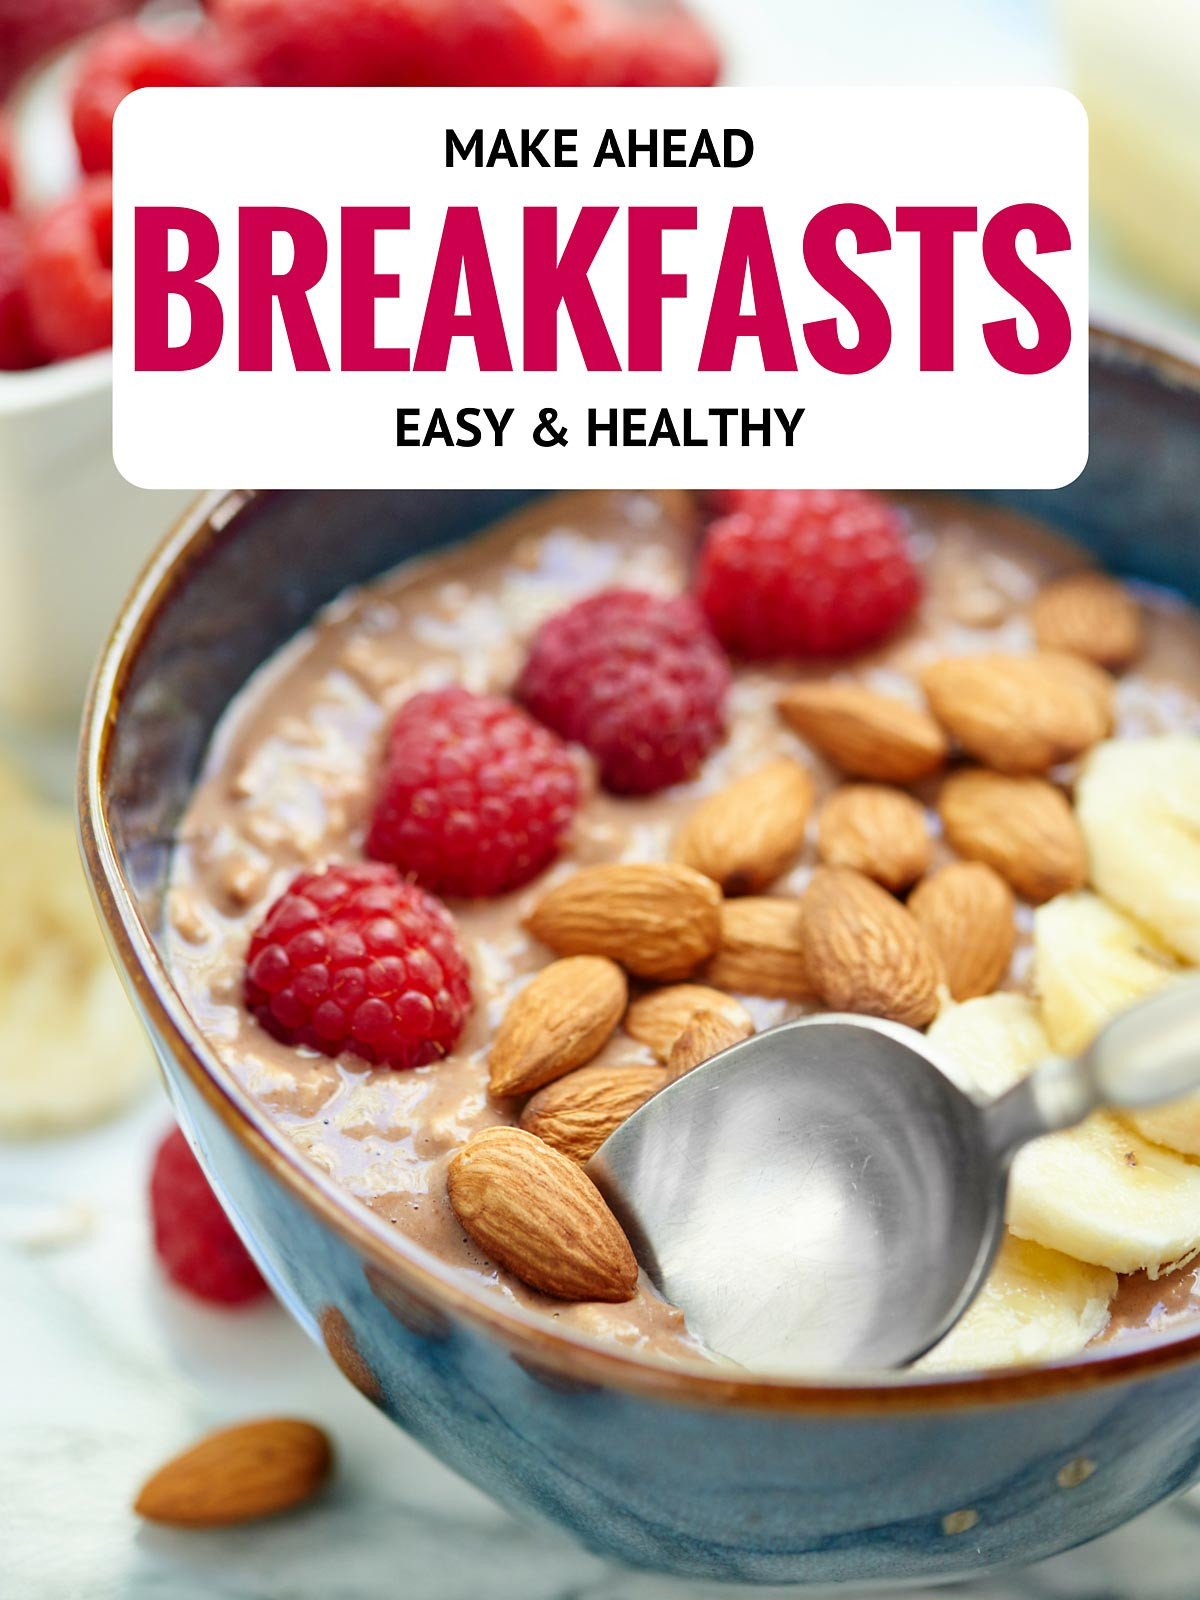 Easy To Make Healthy Breakfast  Easy Healthy Make Ahead Breakfast Recipes Show Me the Yummy